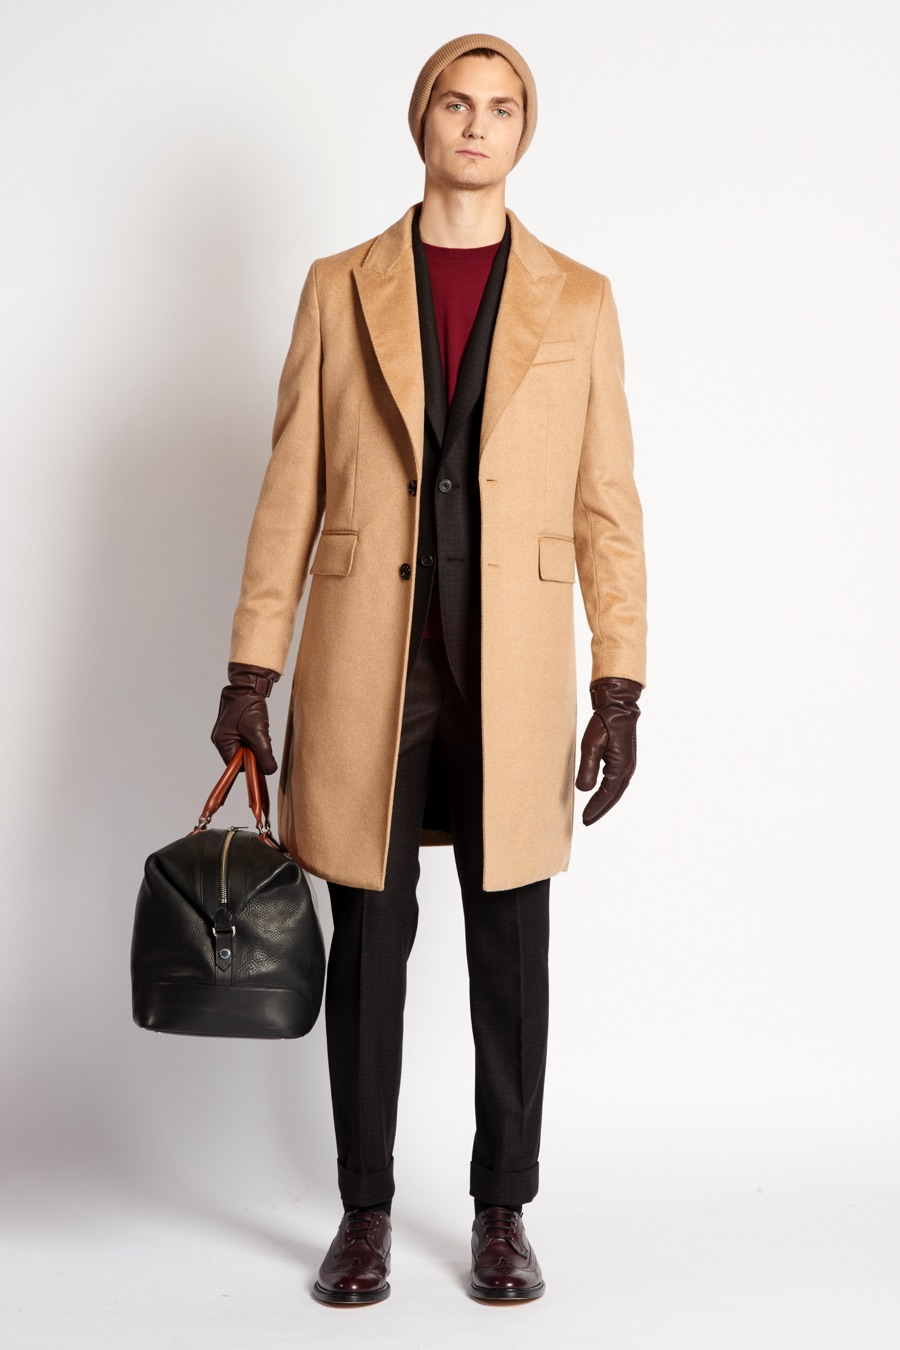 Hardy Amies Goes Formal for Fall Collection